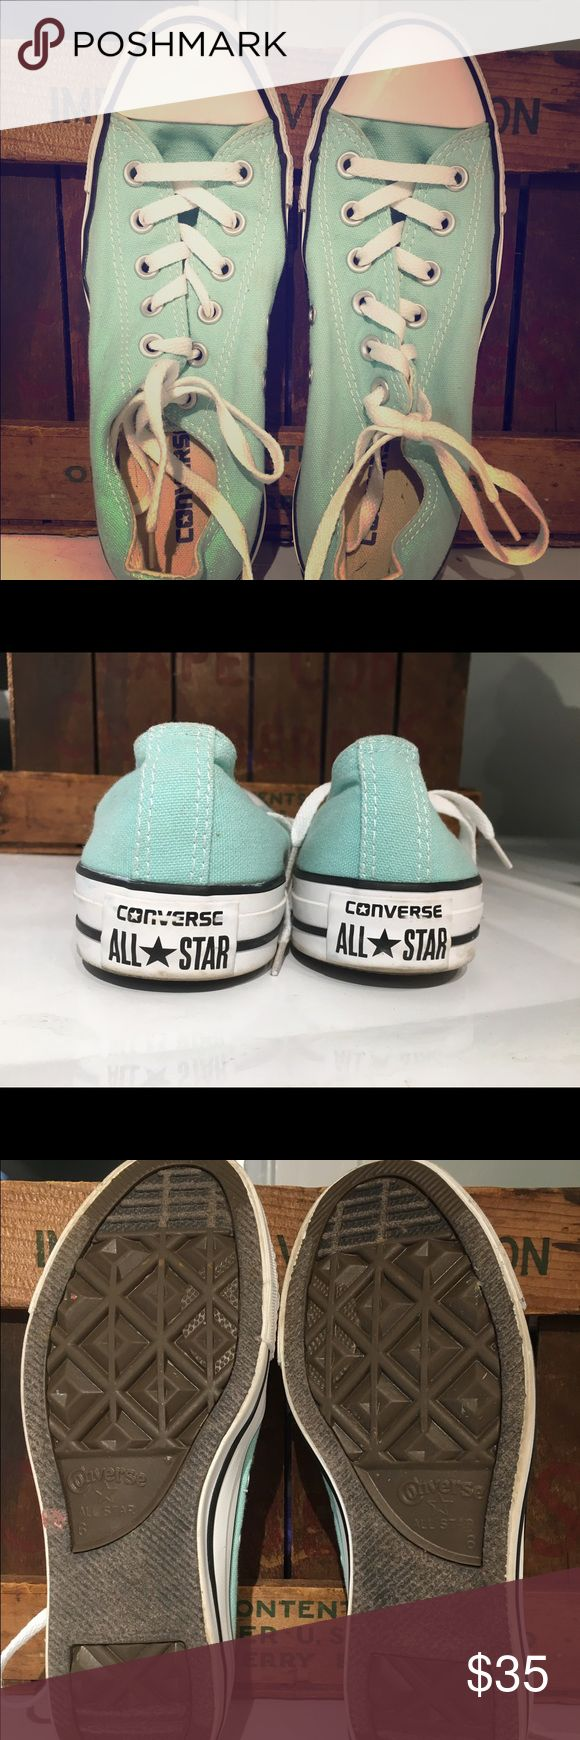 EUC Mint Converse Women's 8, Men's 6 Excellent used condition, very clean and hard to find Converse All Star Chuck Taylor's size 8 women's or 6 men's. Color: mint Converse Shoes Athletic Shoes